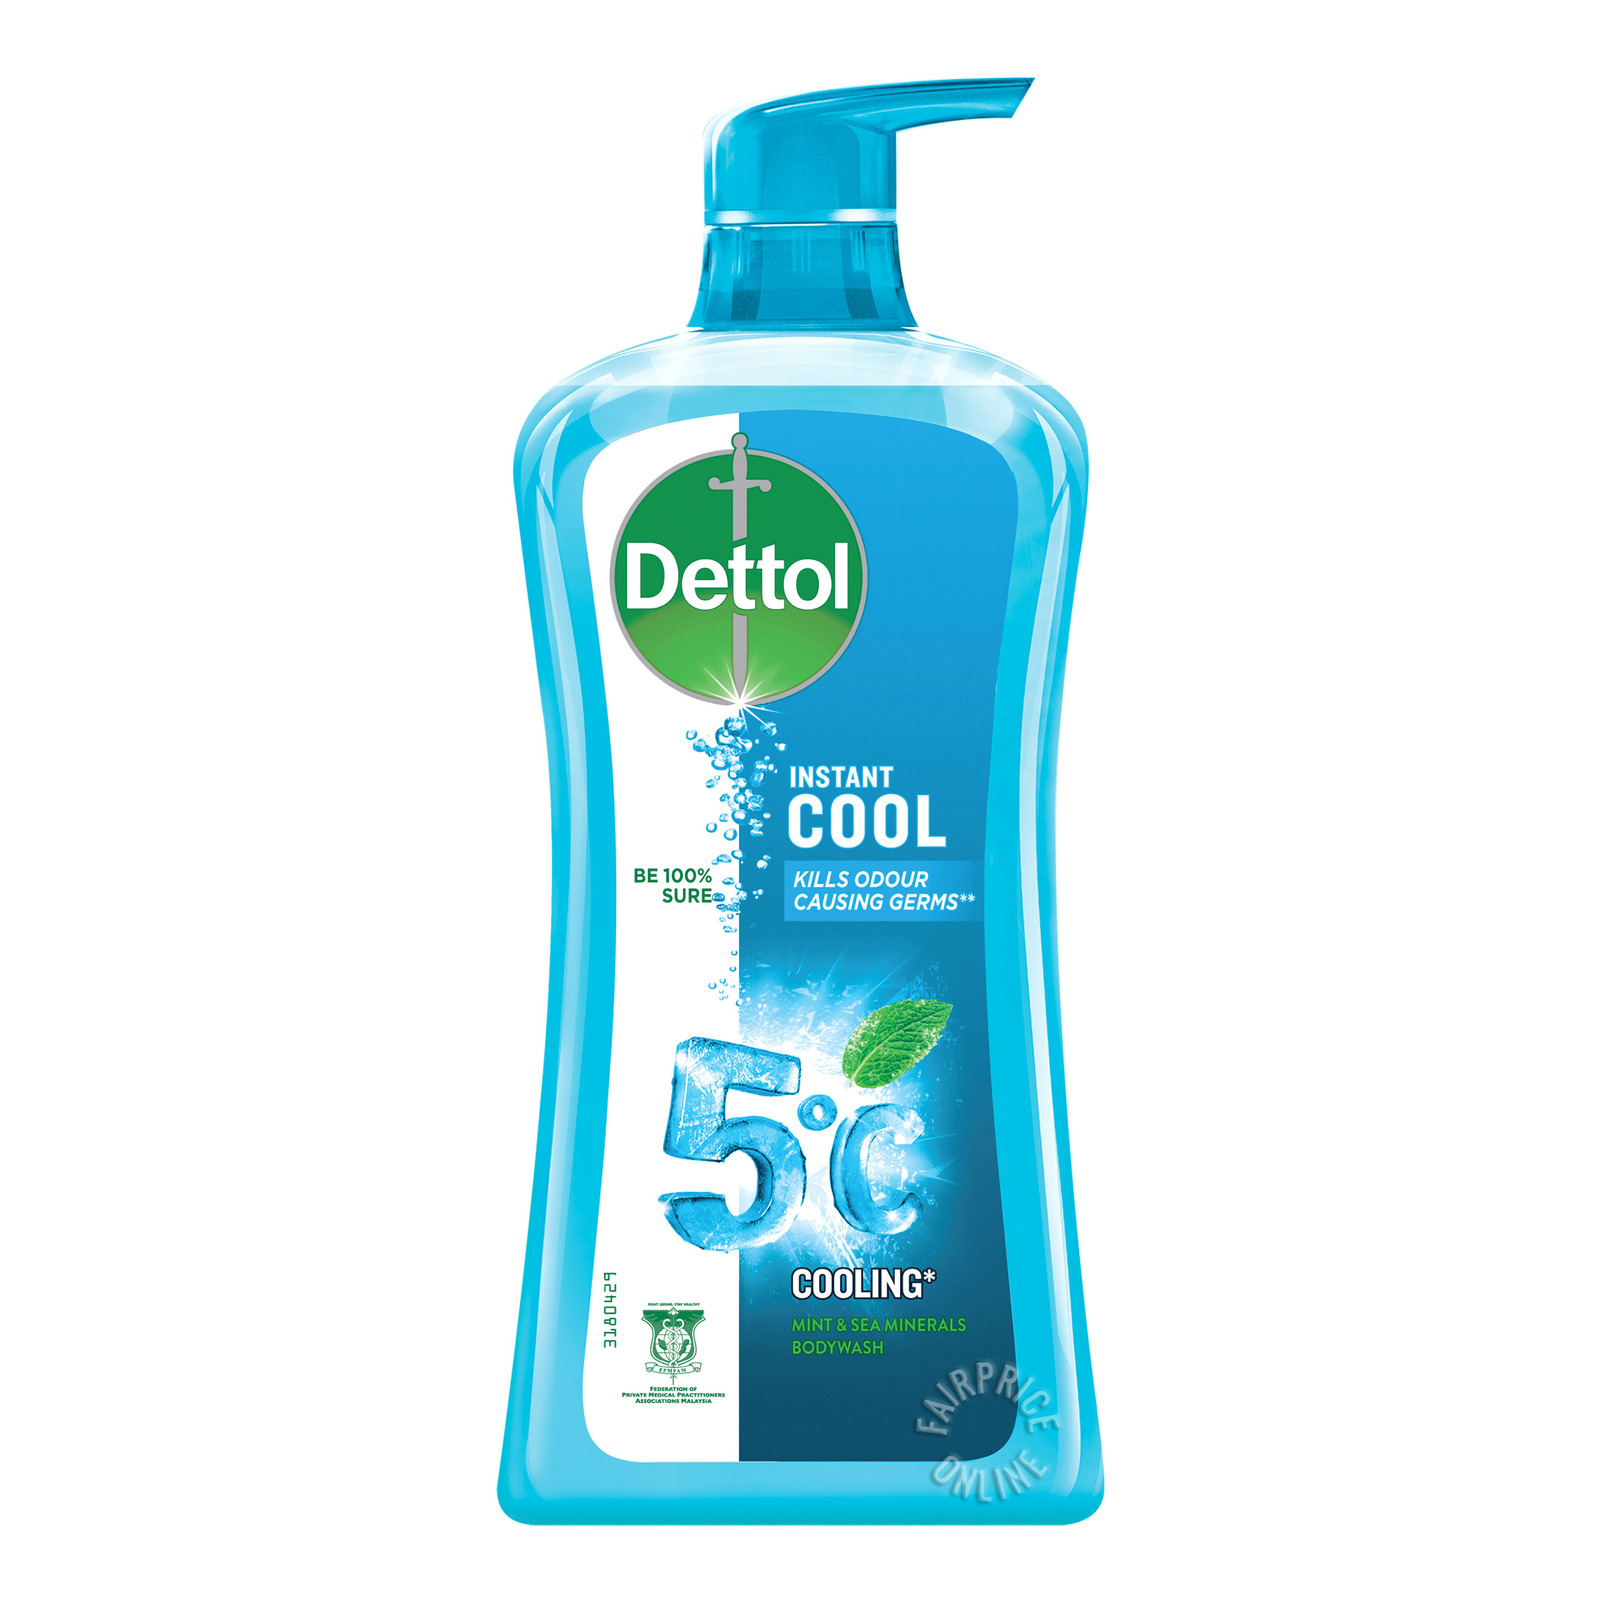 Dettol Anti-Bacterial pH-Balanced Body Wash - Cool